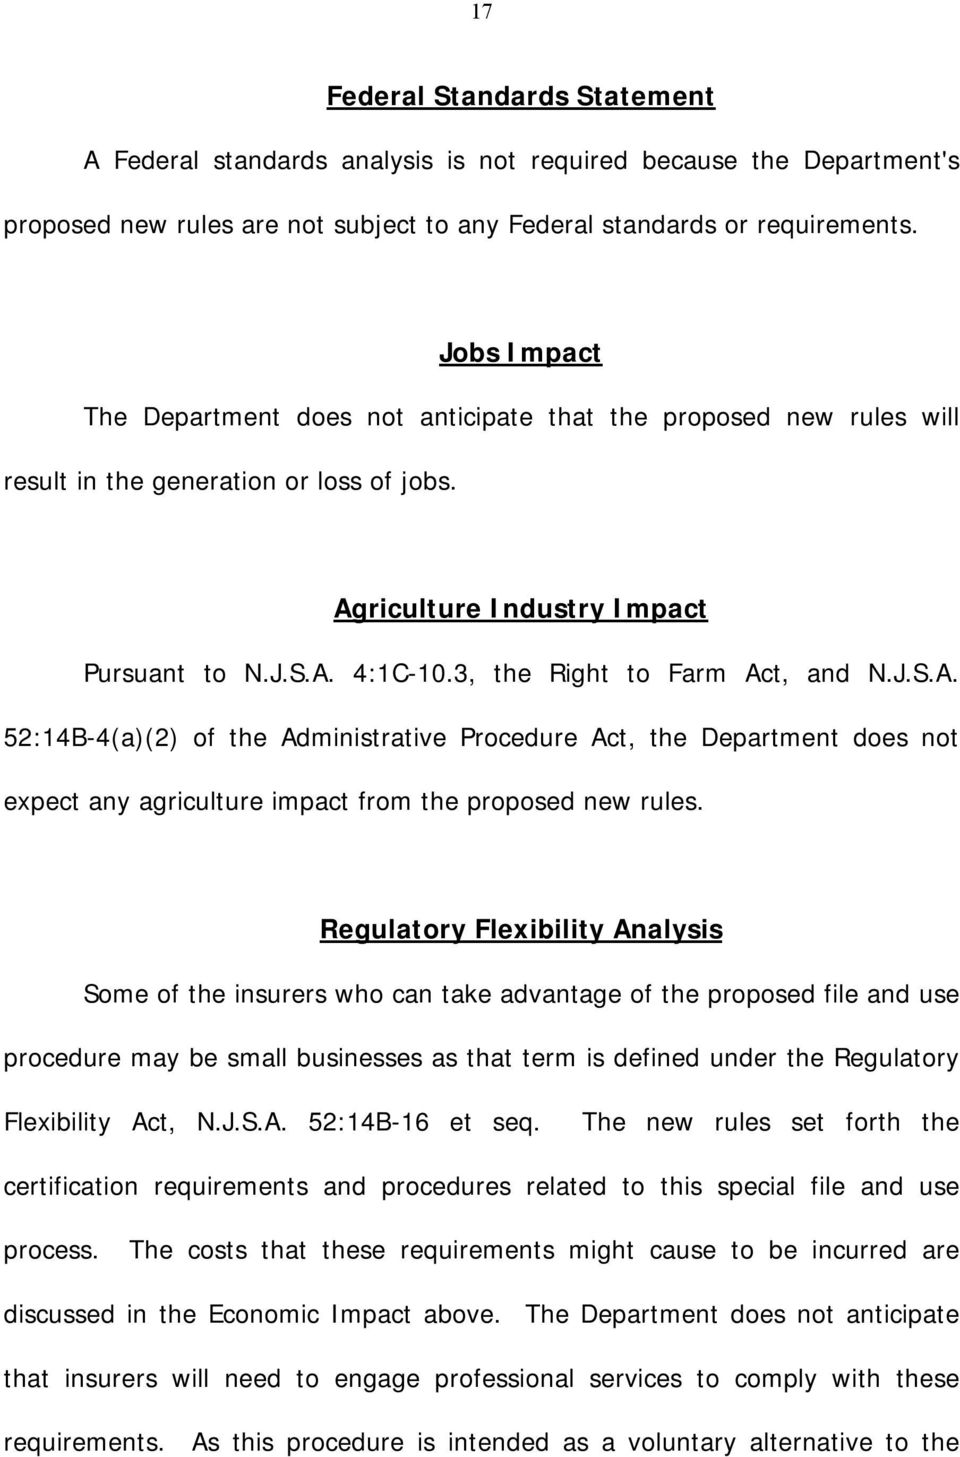 3, the Right to Farm Act, and N.J.S.A. 52:14B-4(a)(2) of the Administrative Procedure Act, the Department does not expect any agriculture impact from the proposed new rules.